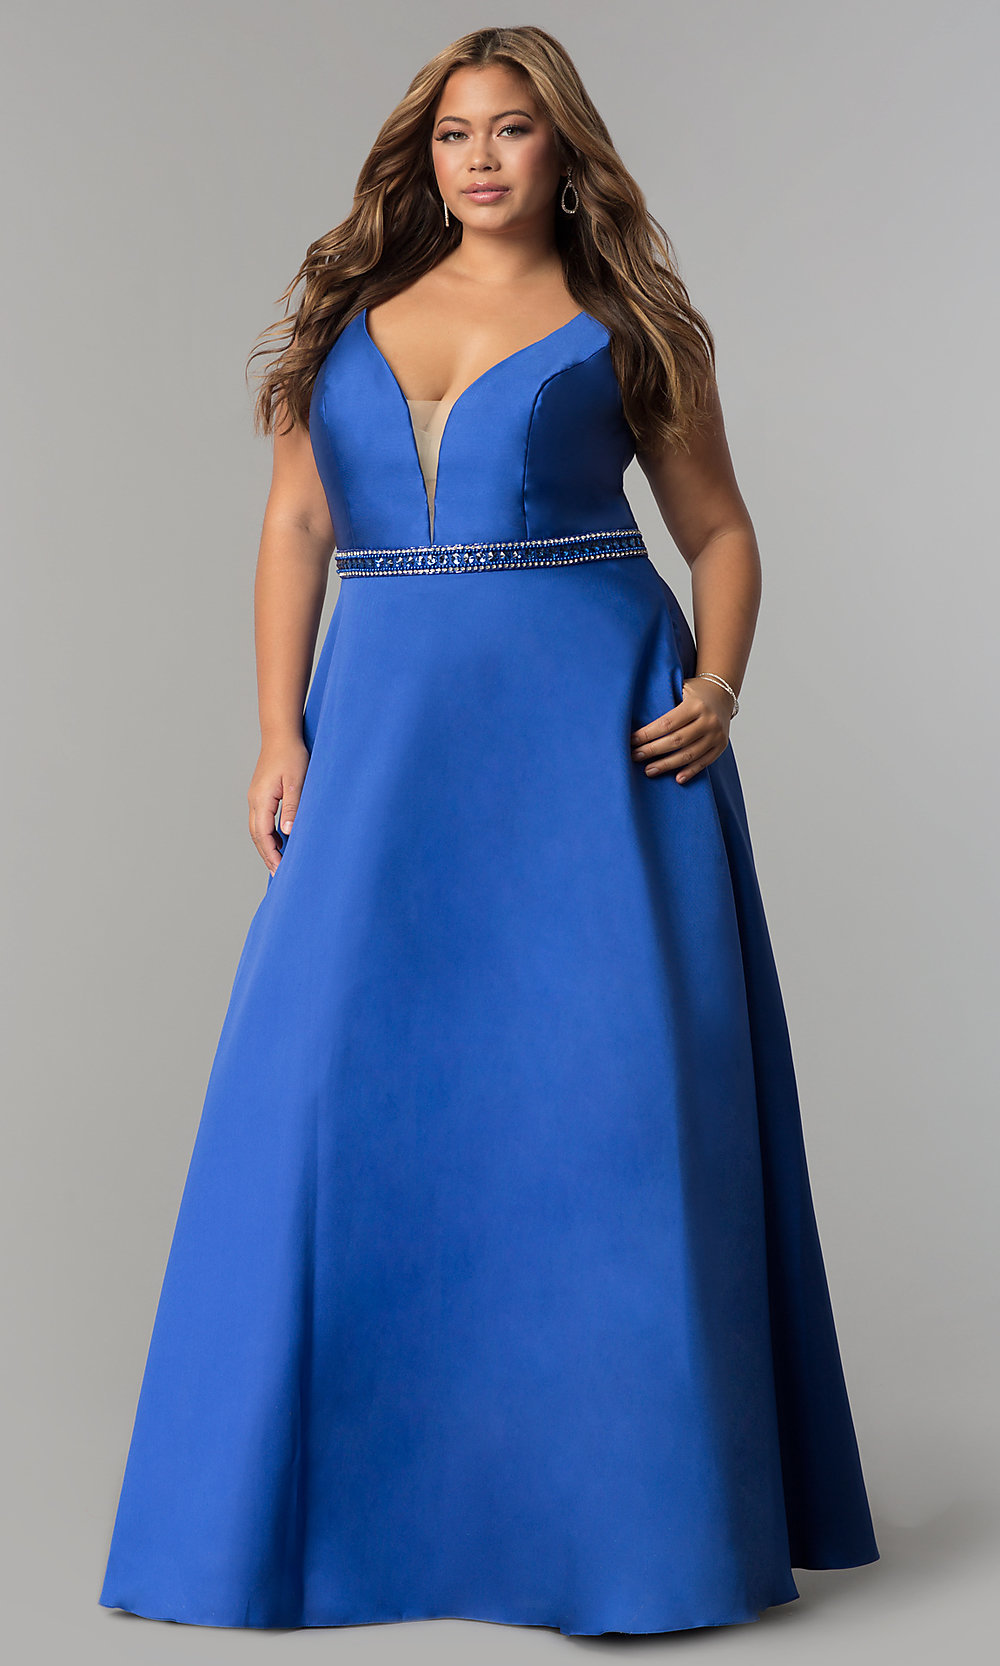 Satin Plus-Size Prom Dress with Pockets - PromGirl